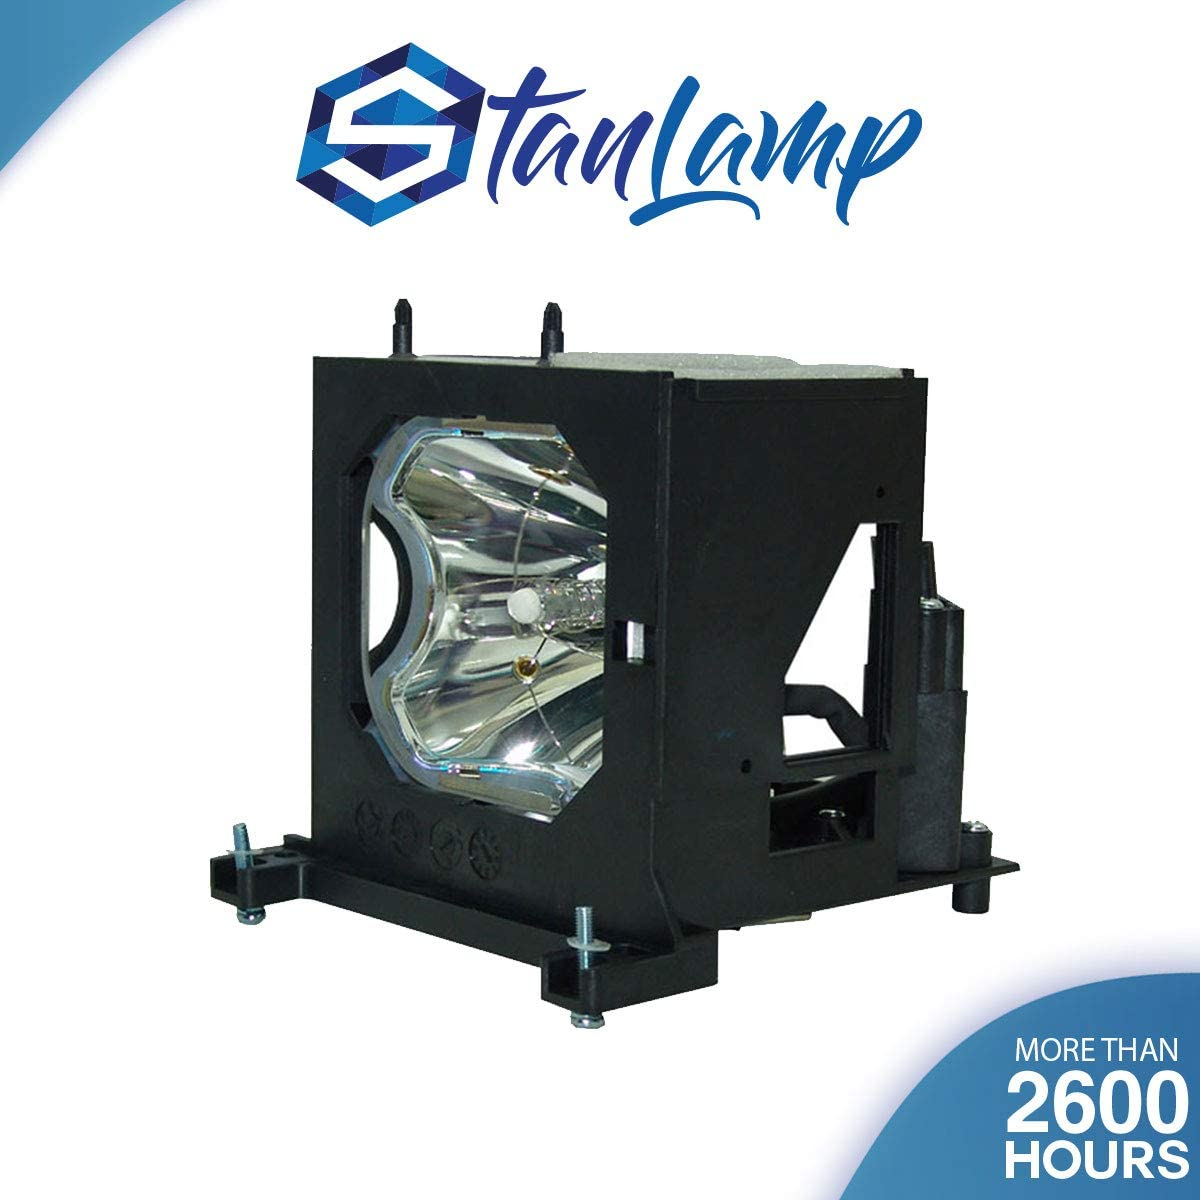 StanLamp Projector Replacement Lamp with Housing for Sony LMP-C162 ES3 ES4 EX3 EX4 CS20 CS20A CX20 CX20A VPL-CS20 VPL-CS20A VPL-CX20 VPL-CX20A